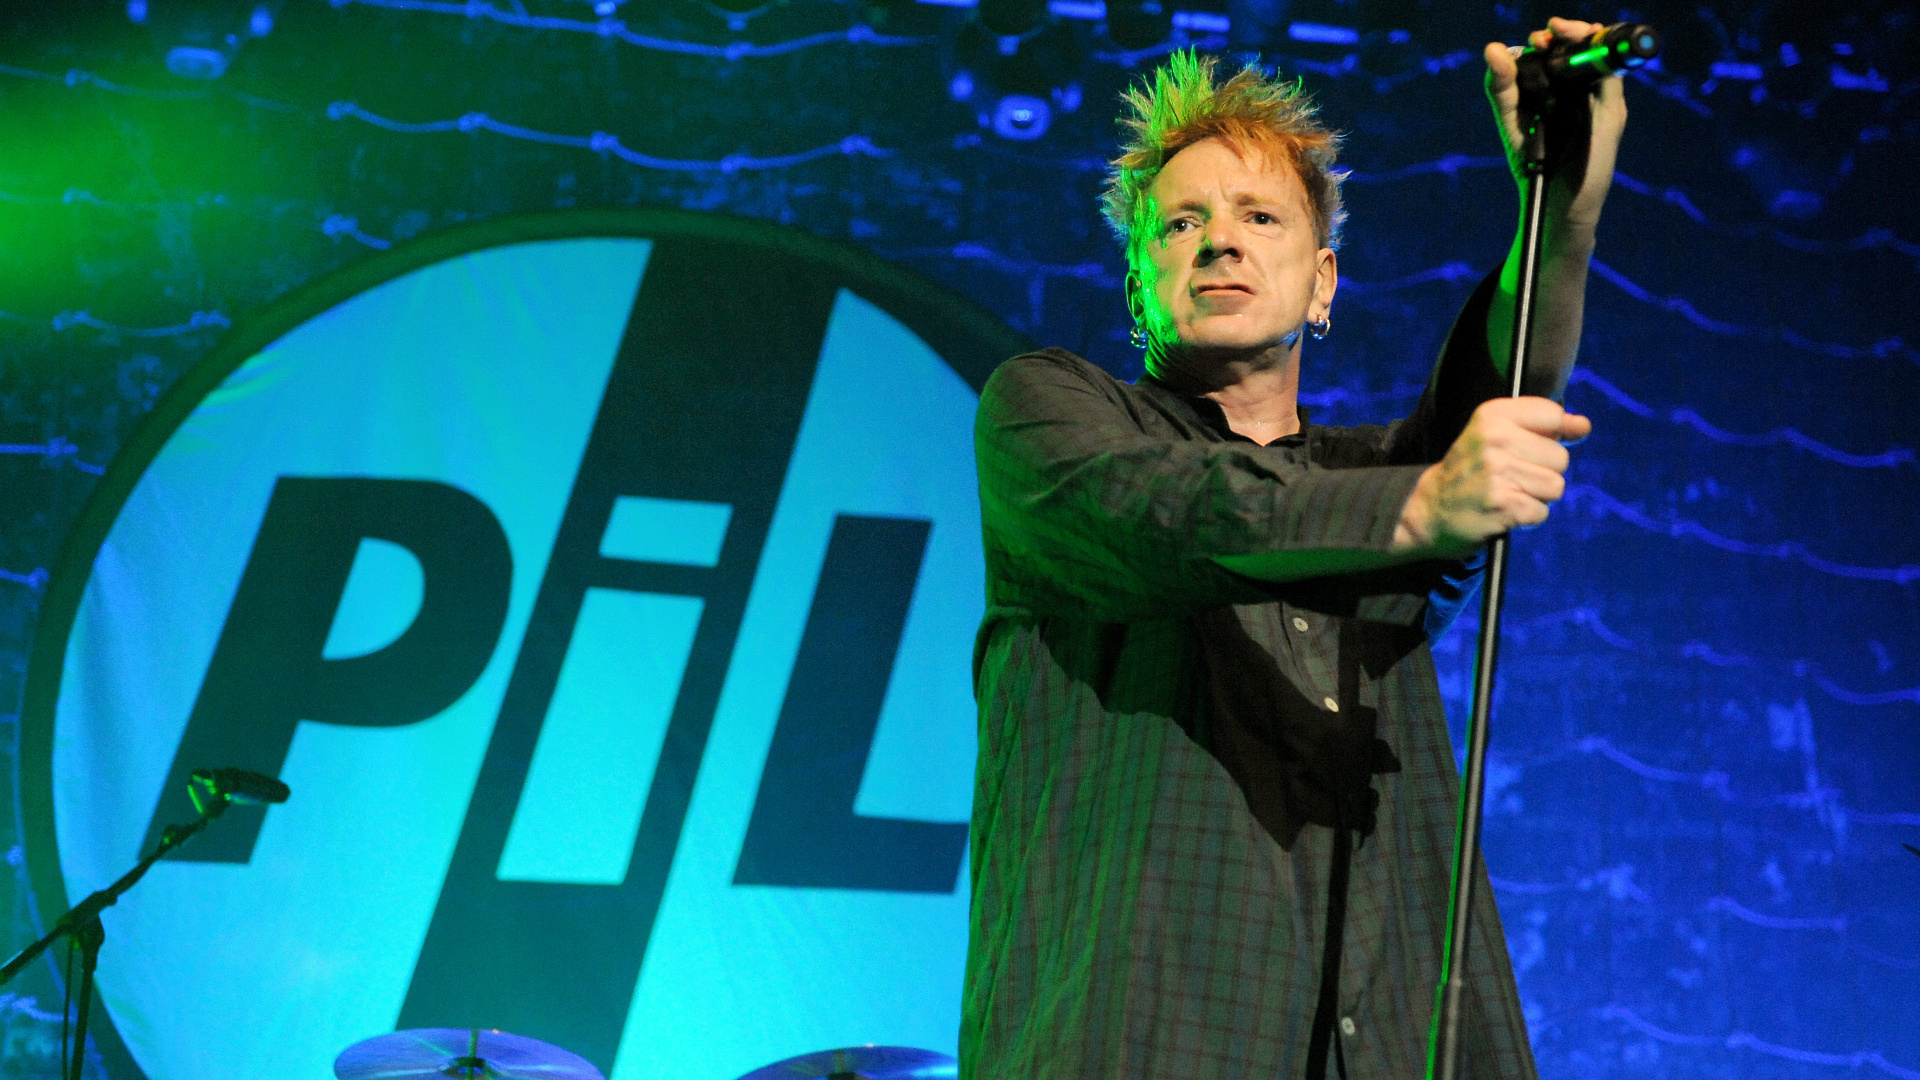 Why worry about being in tune when you have a dose of PiL?